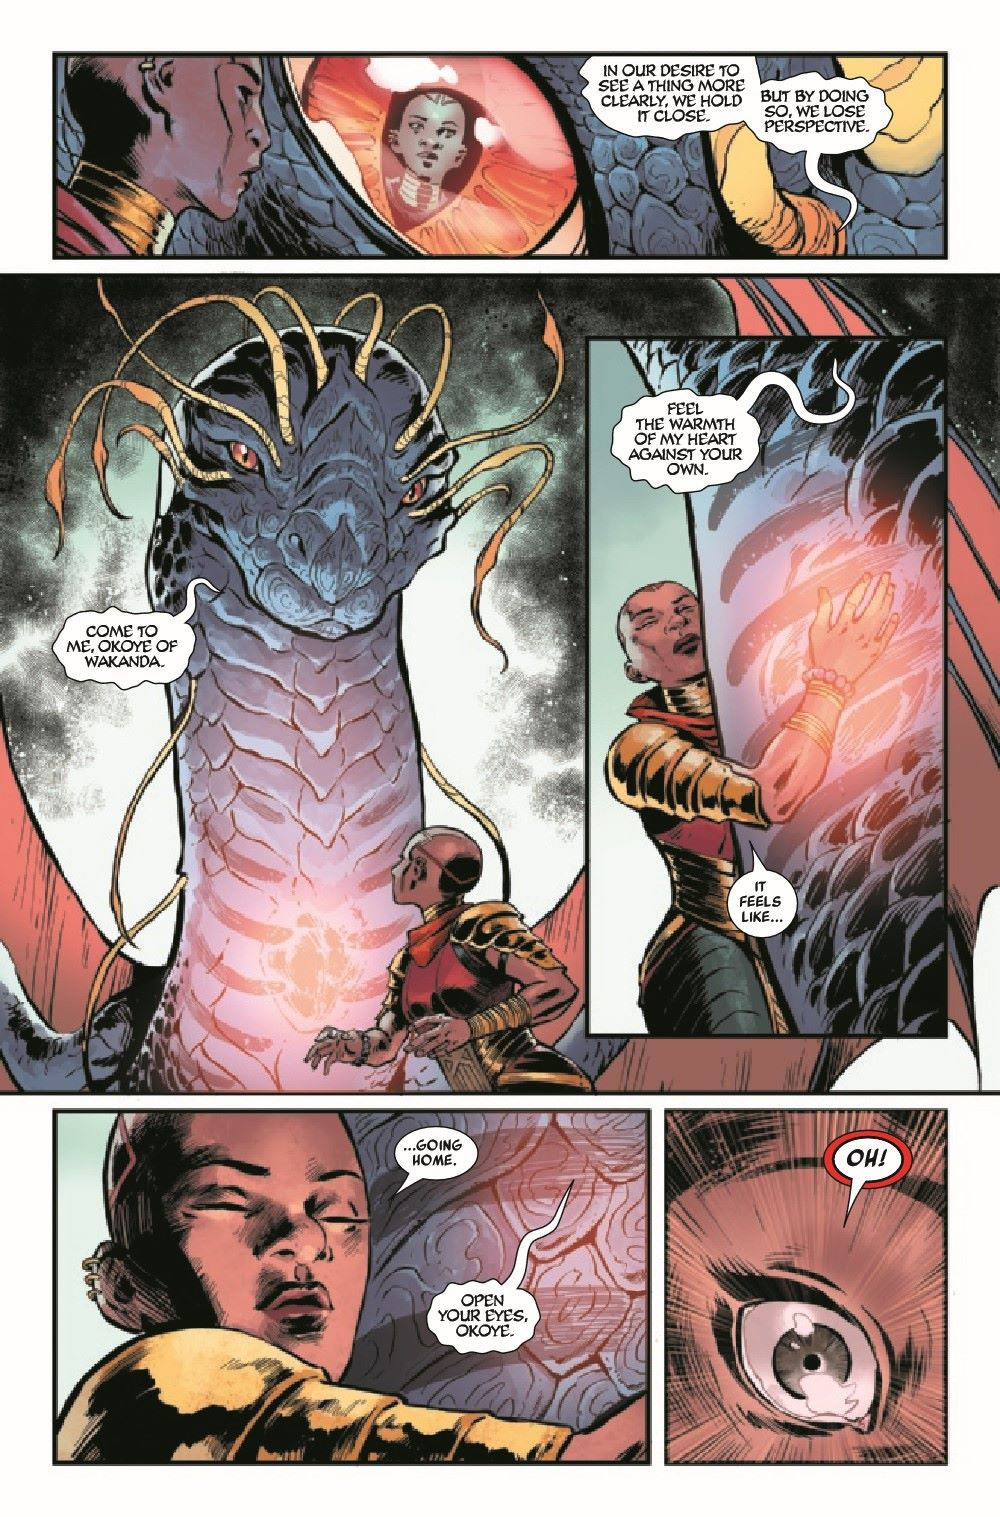 IRONFISTHOD2021004_Preview-5 ComicList Previews: IRON FIST HEART OF THE DRAGON #4 (OF 6)